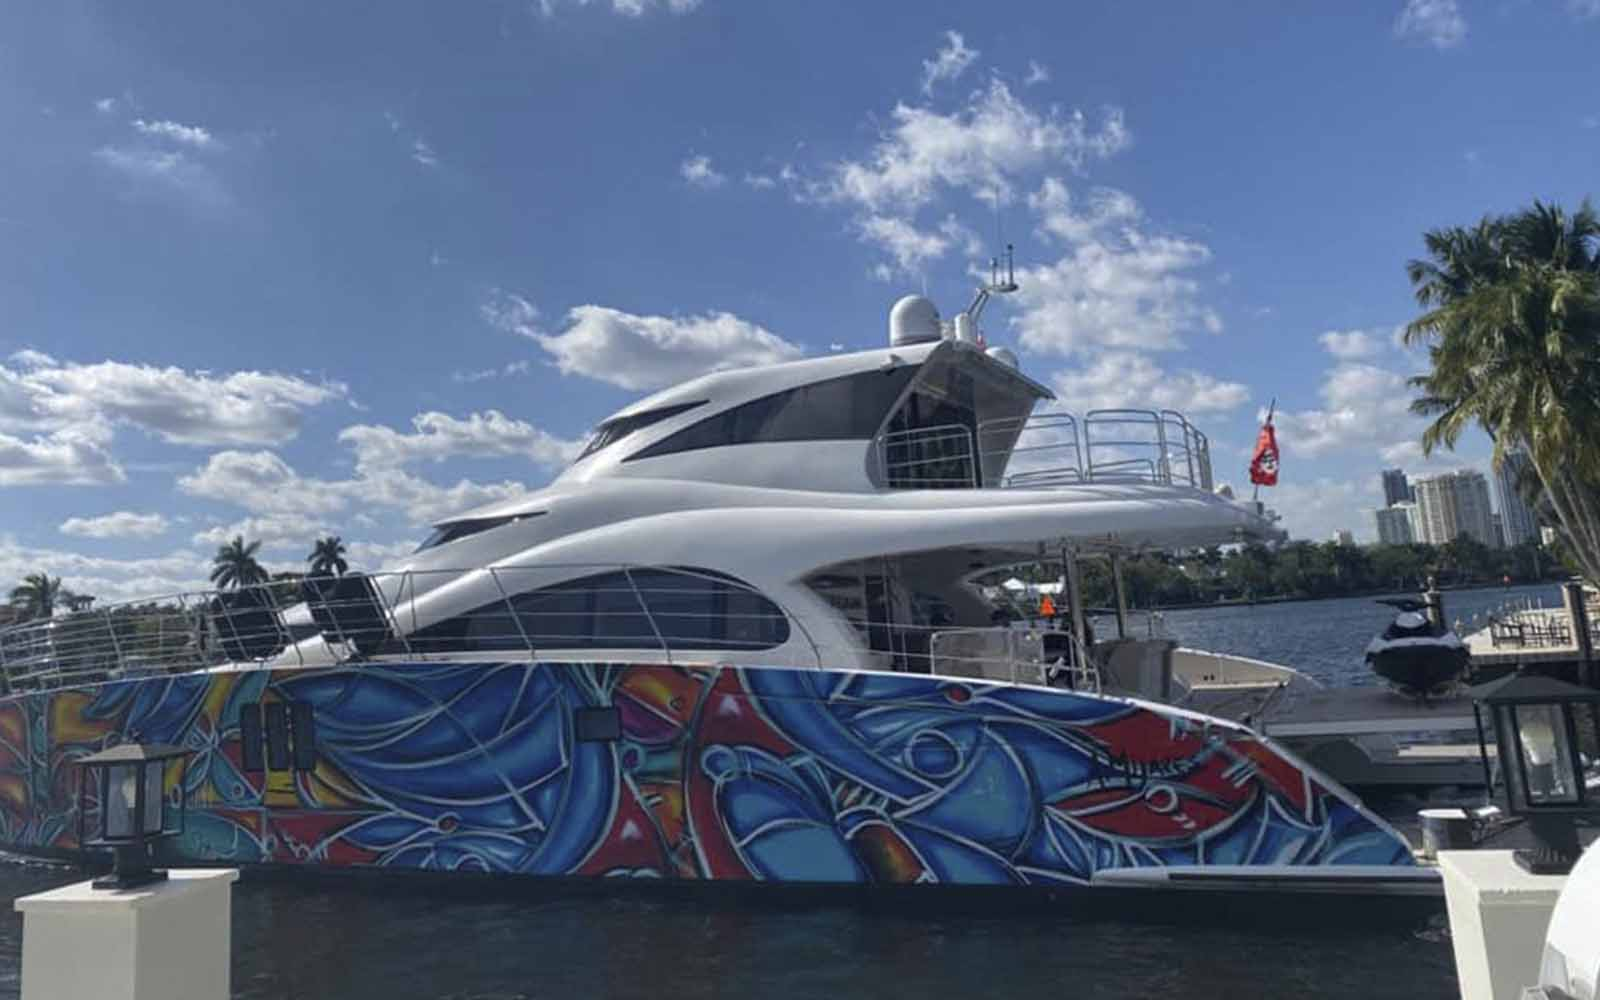 sunreef iate art basel miami - boat shopping